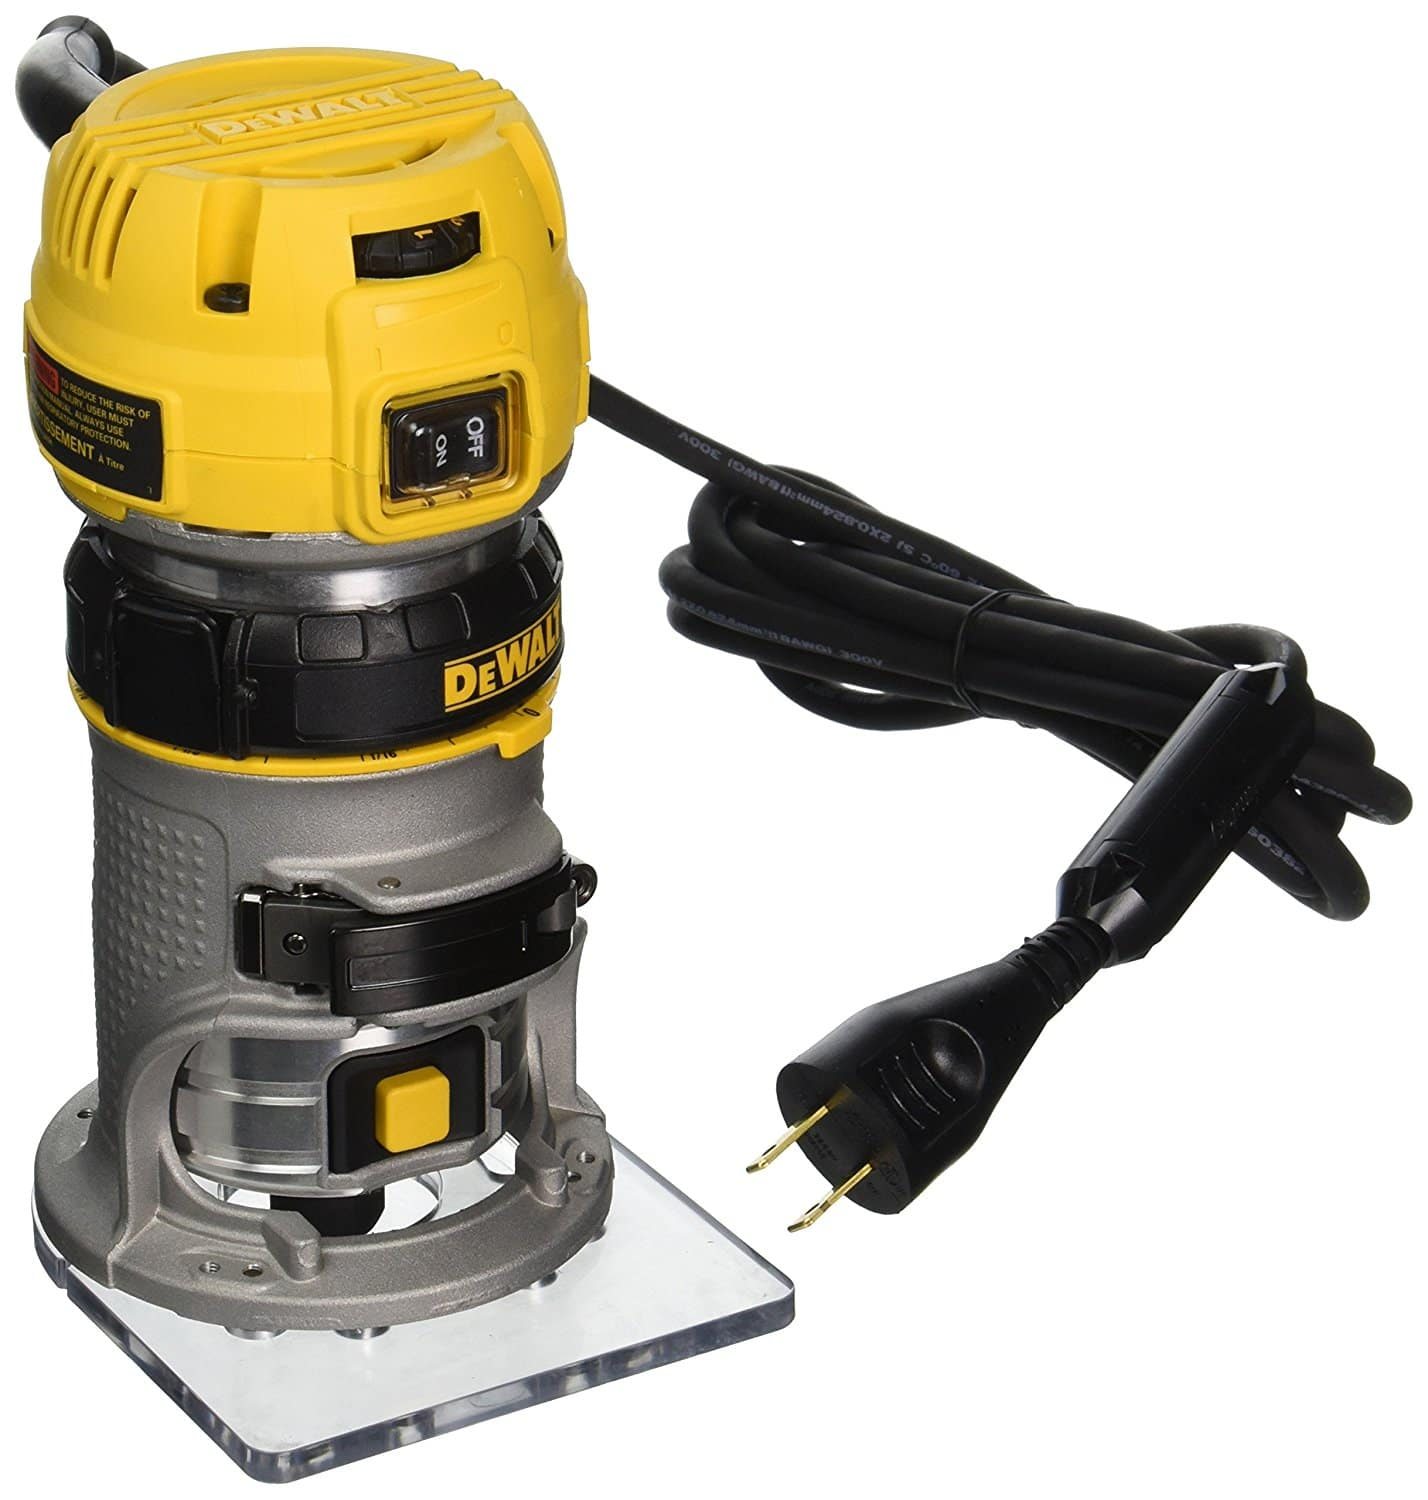 DEWALT DWP611 1.25 HP Max Torque Variable Speed Compact Router with Dual LEDs $99